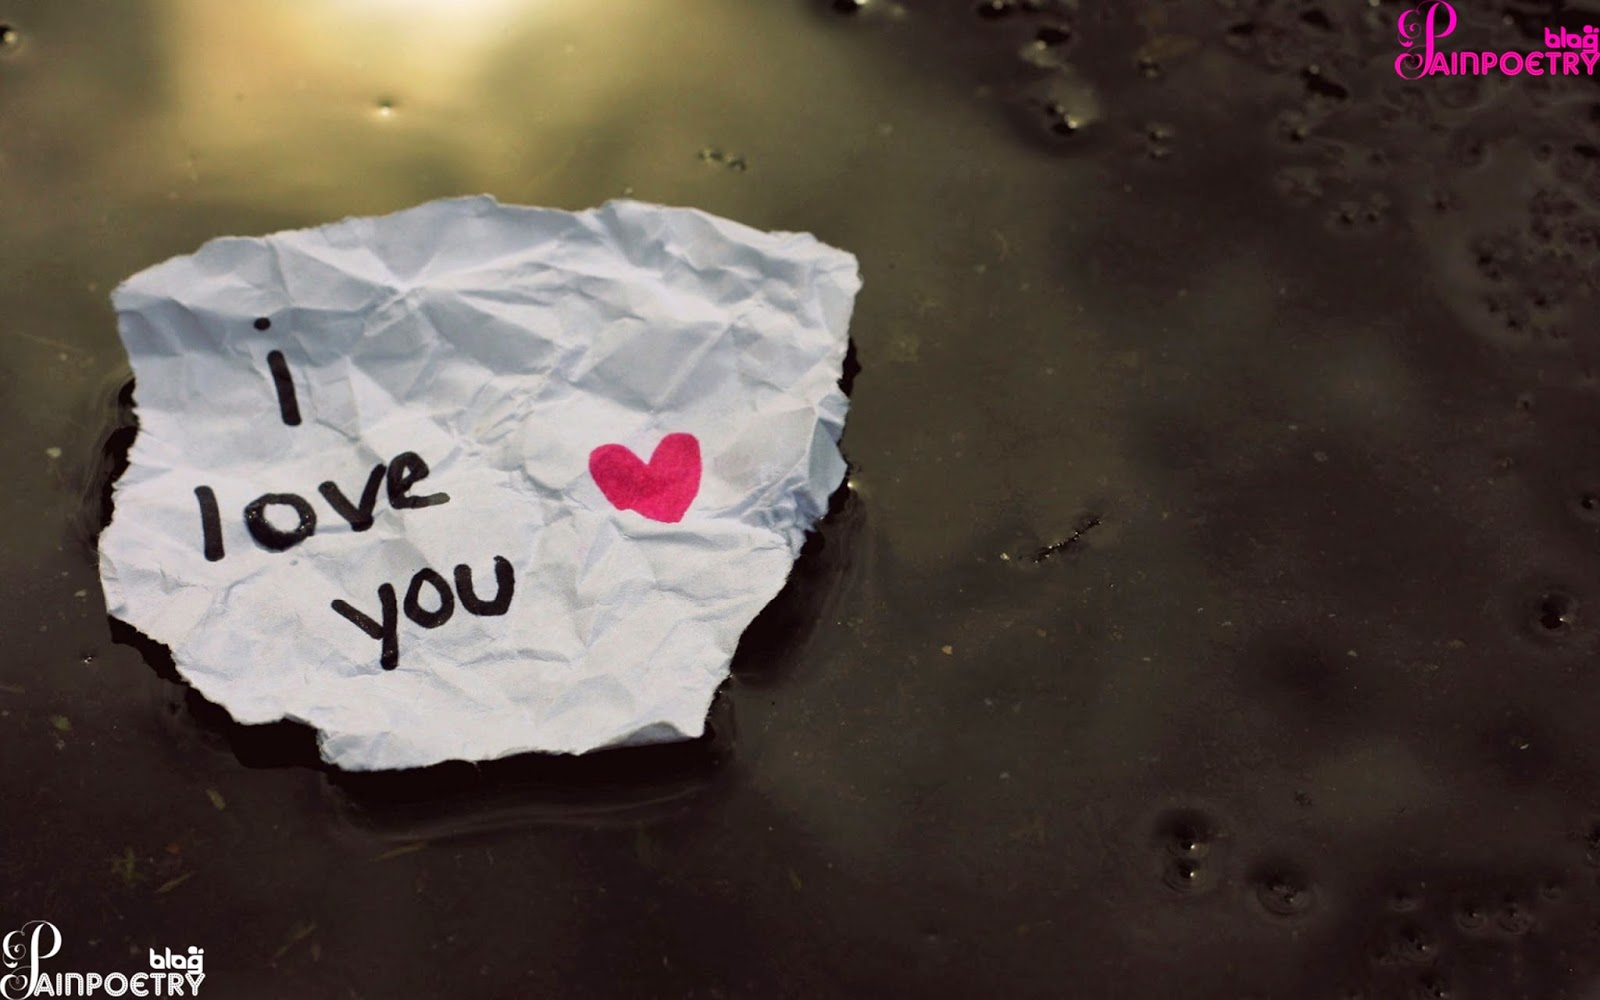 Love-Wishes-Wallpaper-For-Lovers-I-Love-You-Writed-On-Raper-With-Heart-Image-HD.